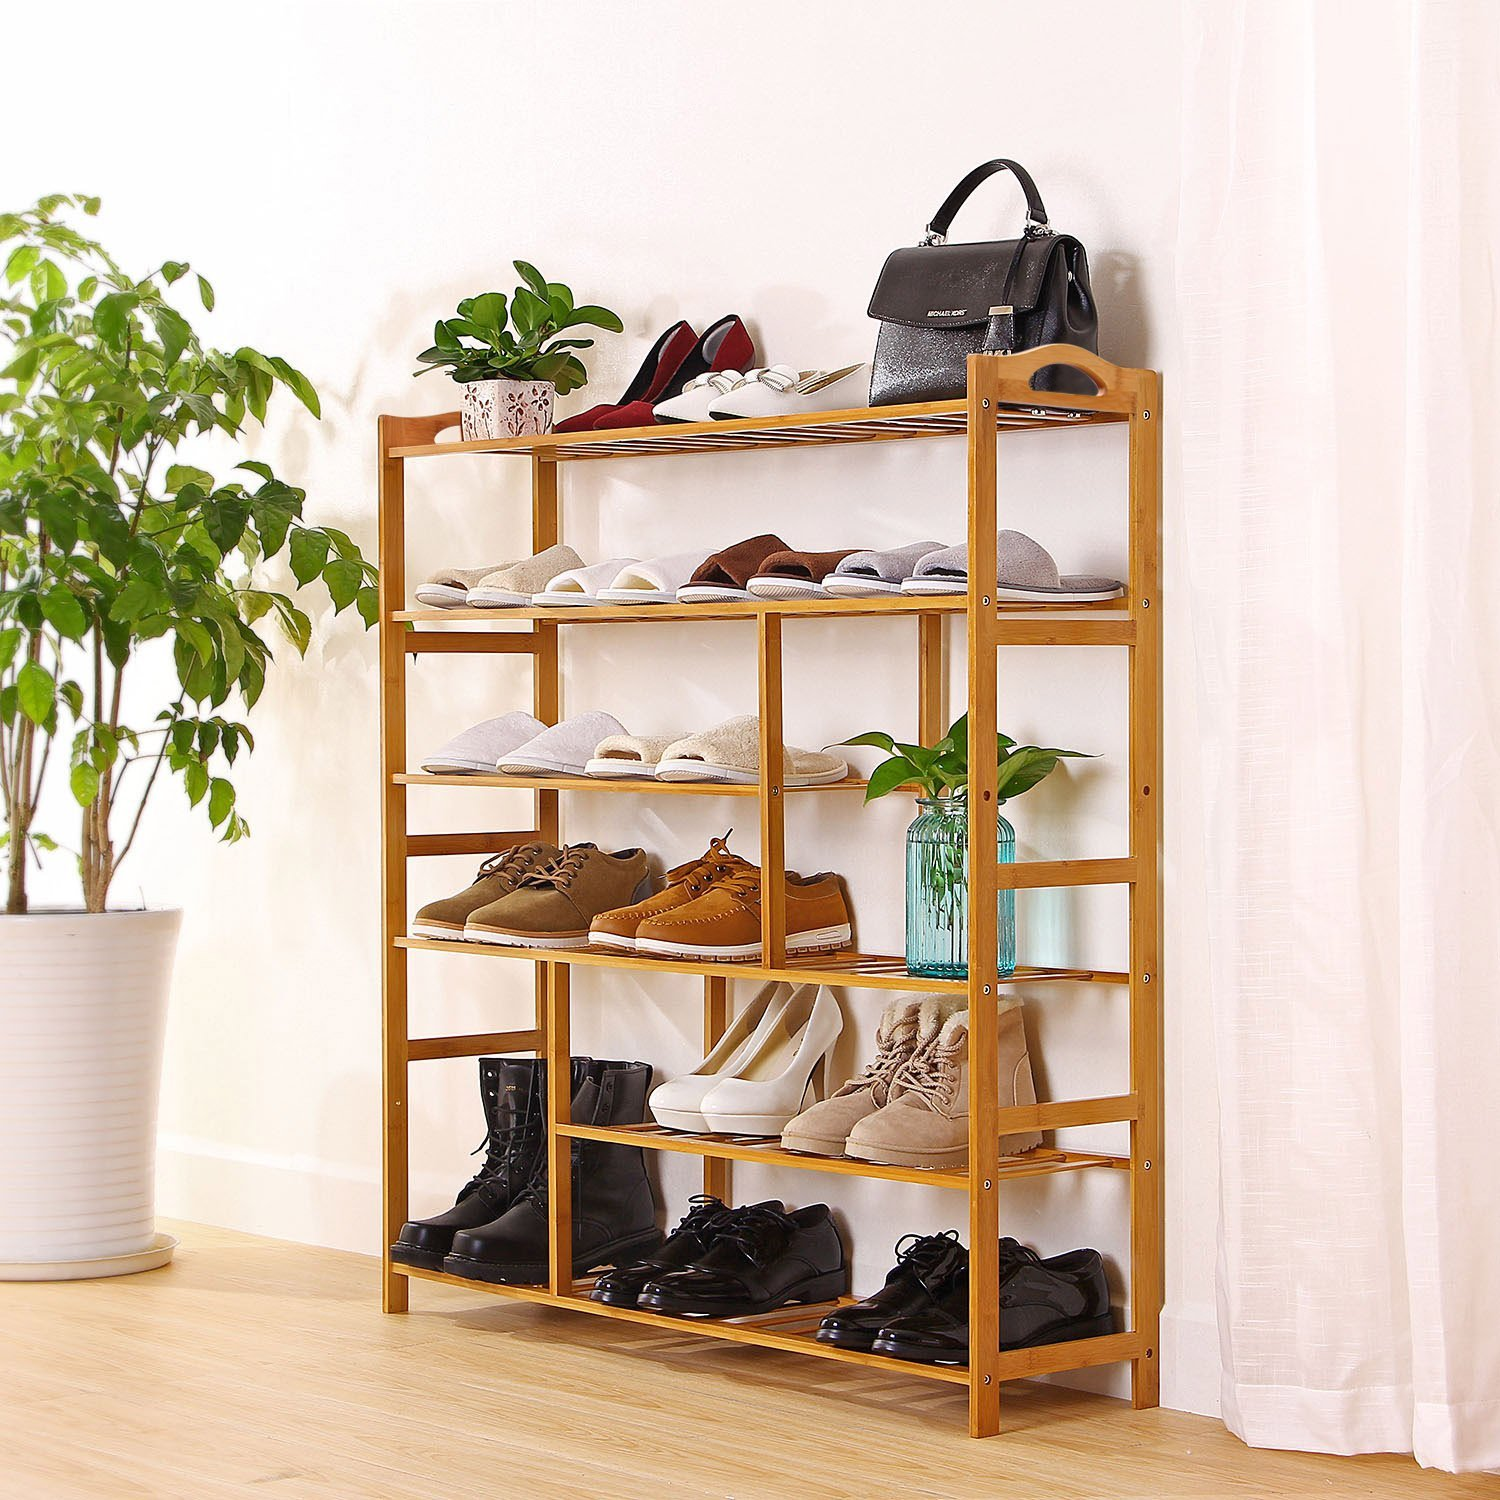 the organizer main two wood products bamboo shelf storage image bathroom store tiered rack shower head